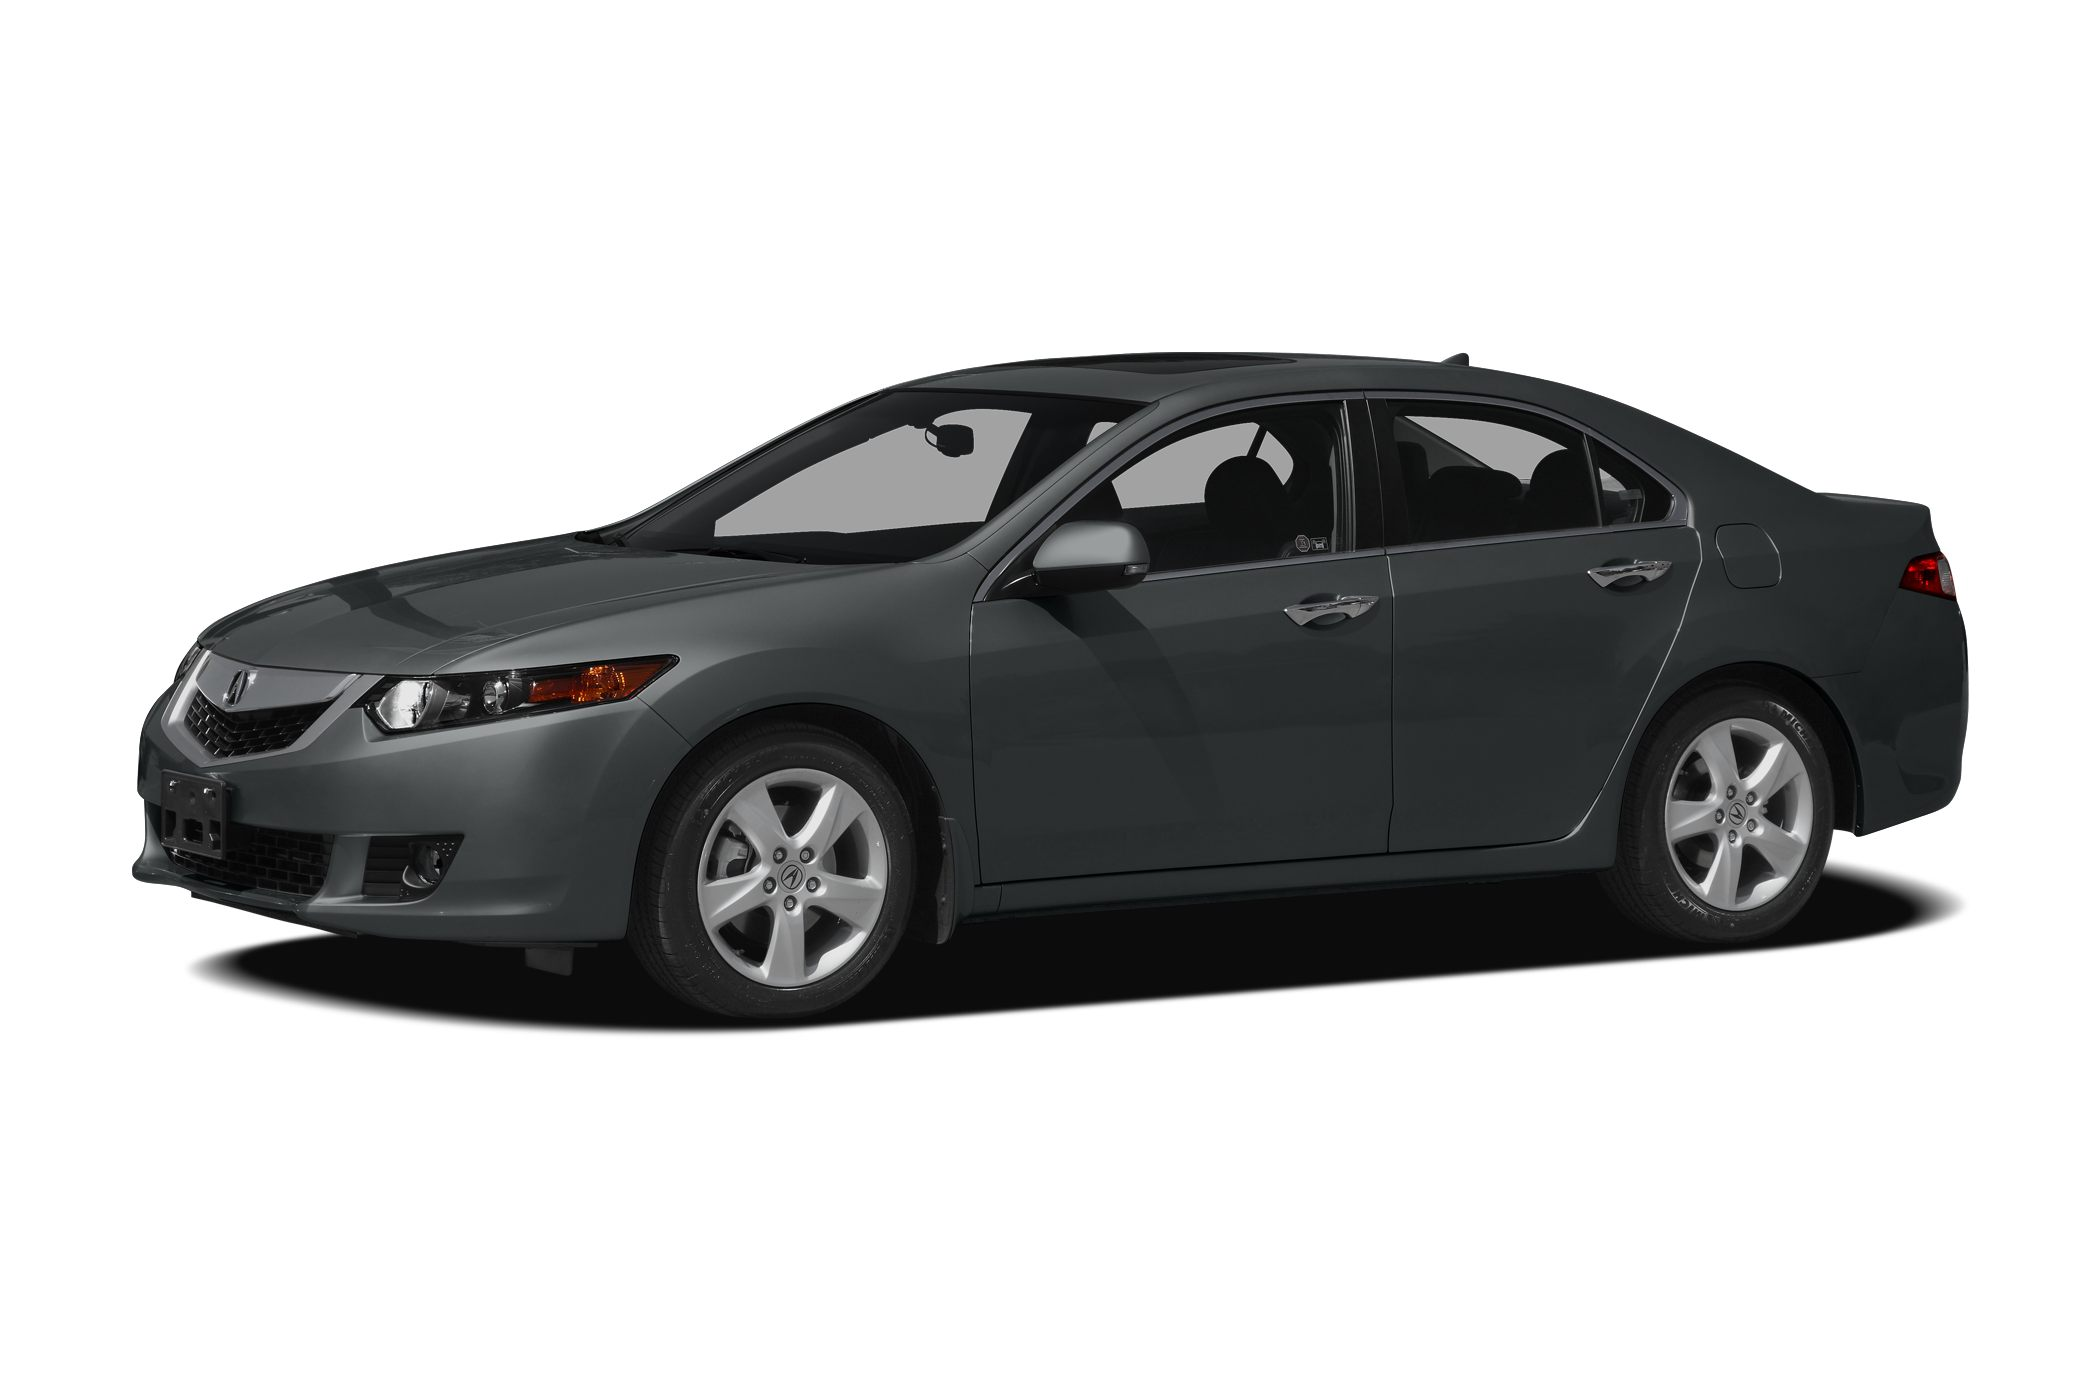 2009 Acura TSX Sedan for sale in Waynesboro for $0 with 86,916 miles